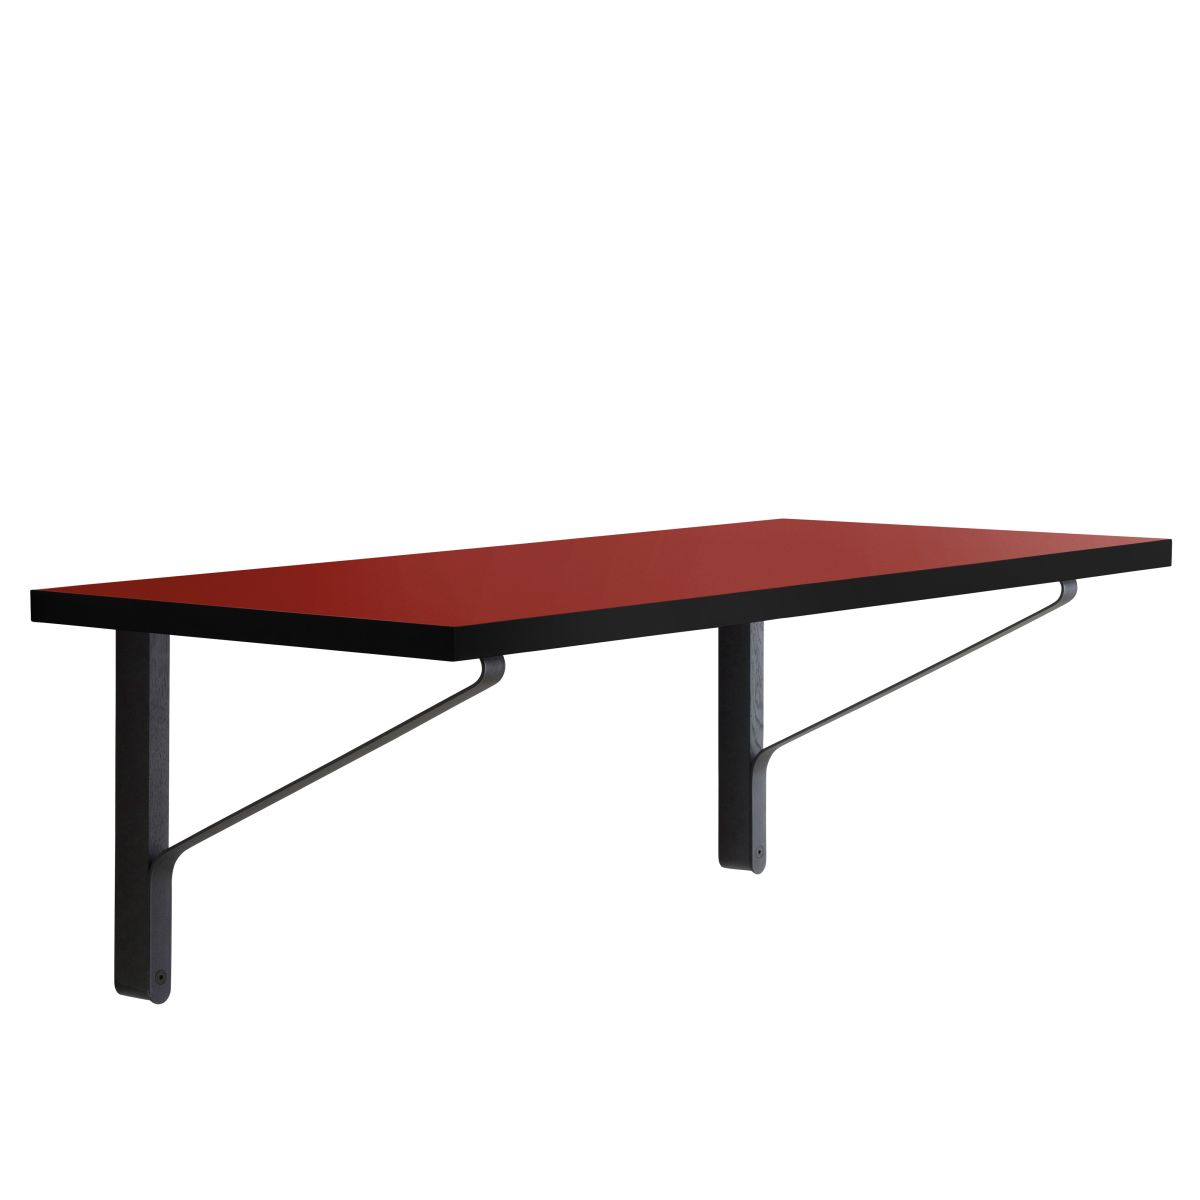 Kaari-Wall-Console-Reb006-Black-Oak-Red-Linoleum_Web-2092902